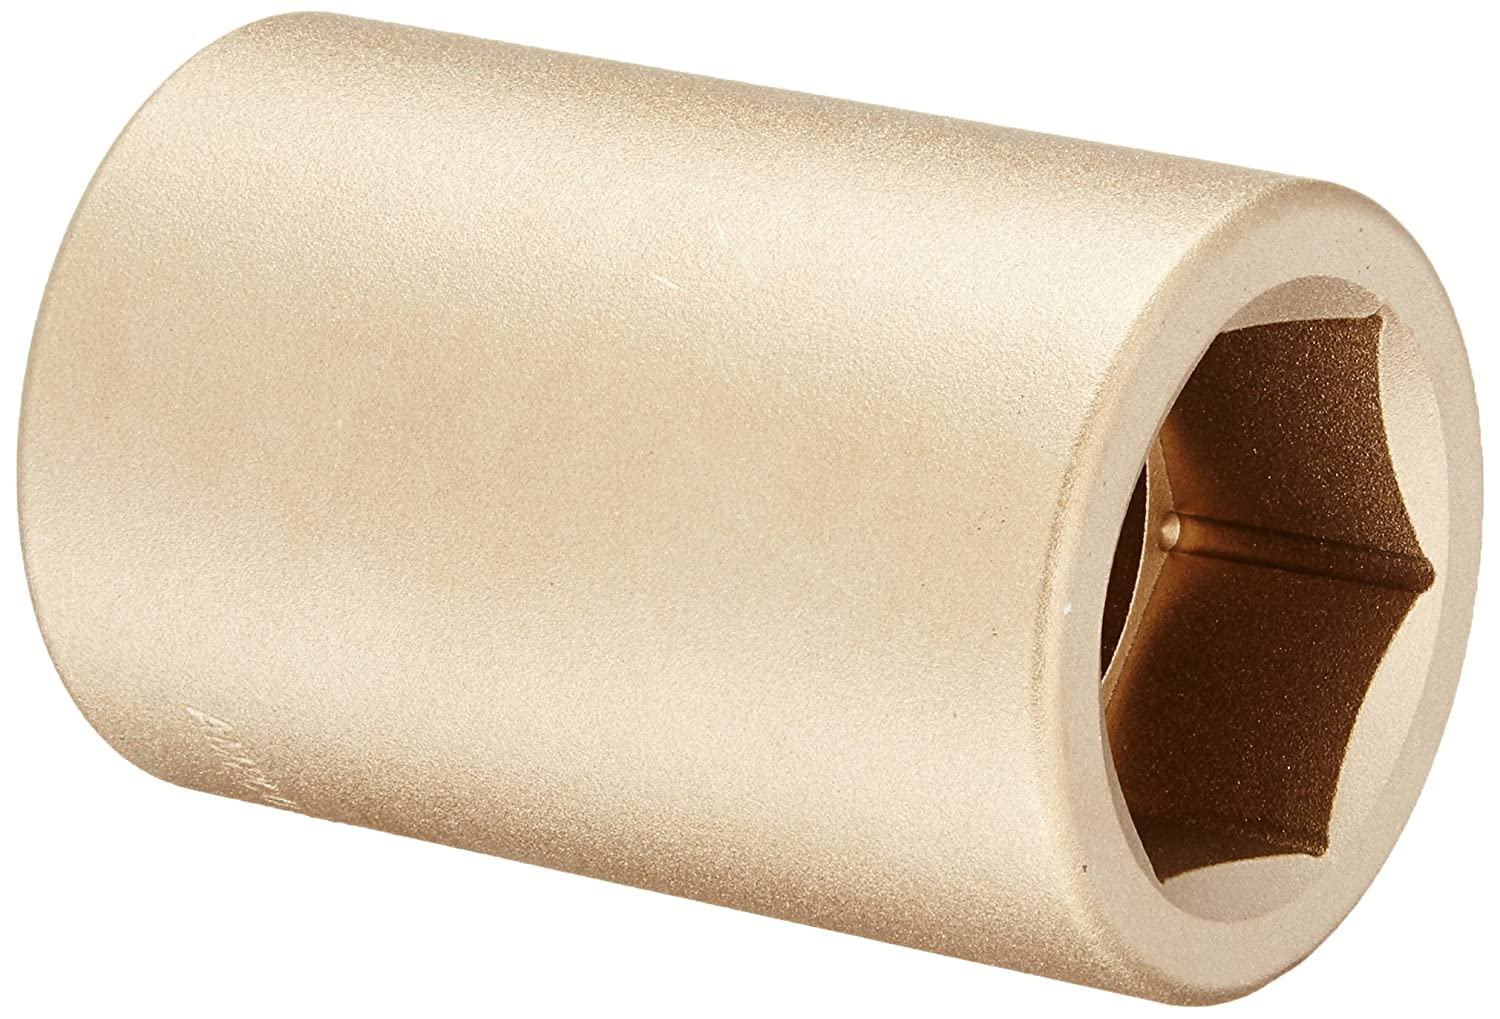 Ampco Safety Tools DW-3/4D37MM Socket, Deep Well, Non-Sparking, Non-Magnetic, Corrosion Resistant, 3/4 Drive, 37 mm by Ampco Safety Tools B00NVSXGTK